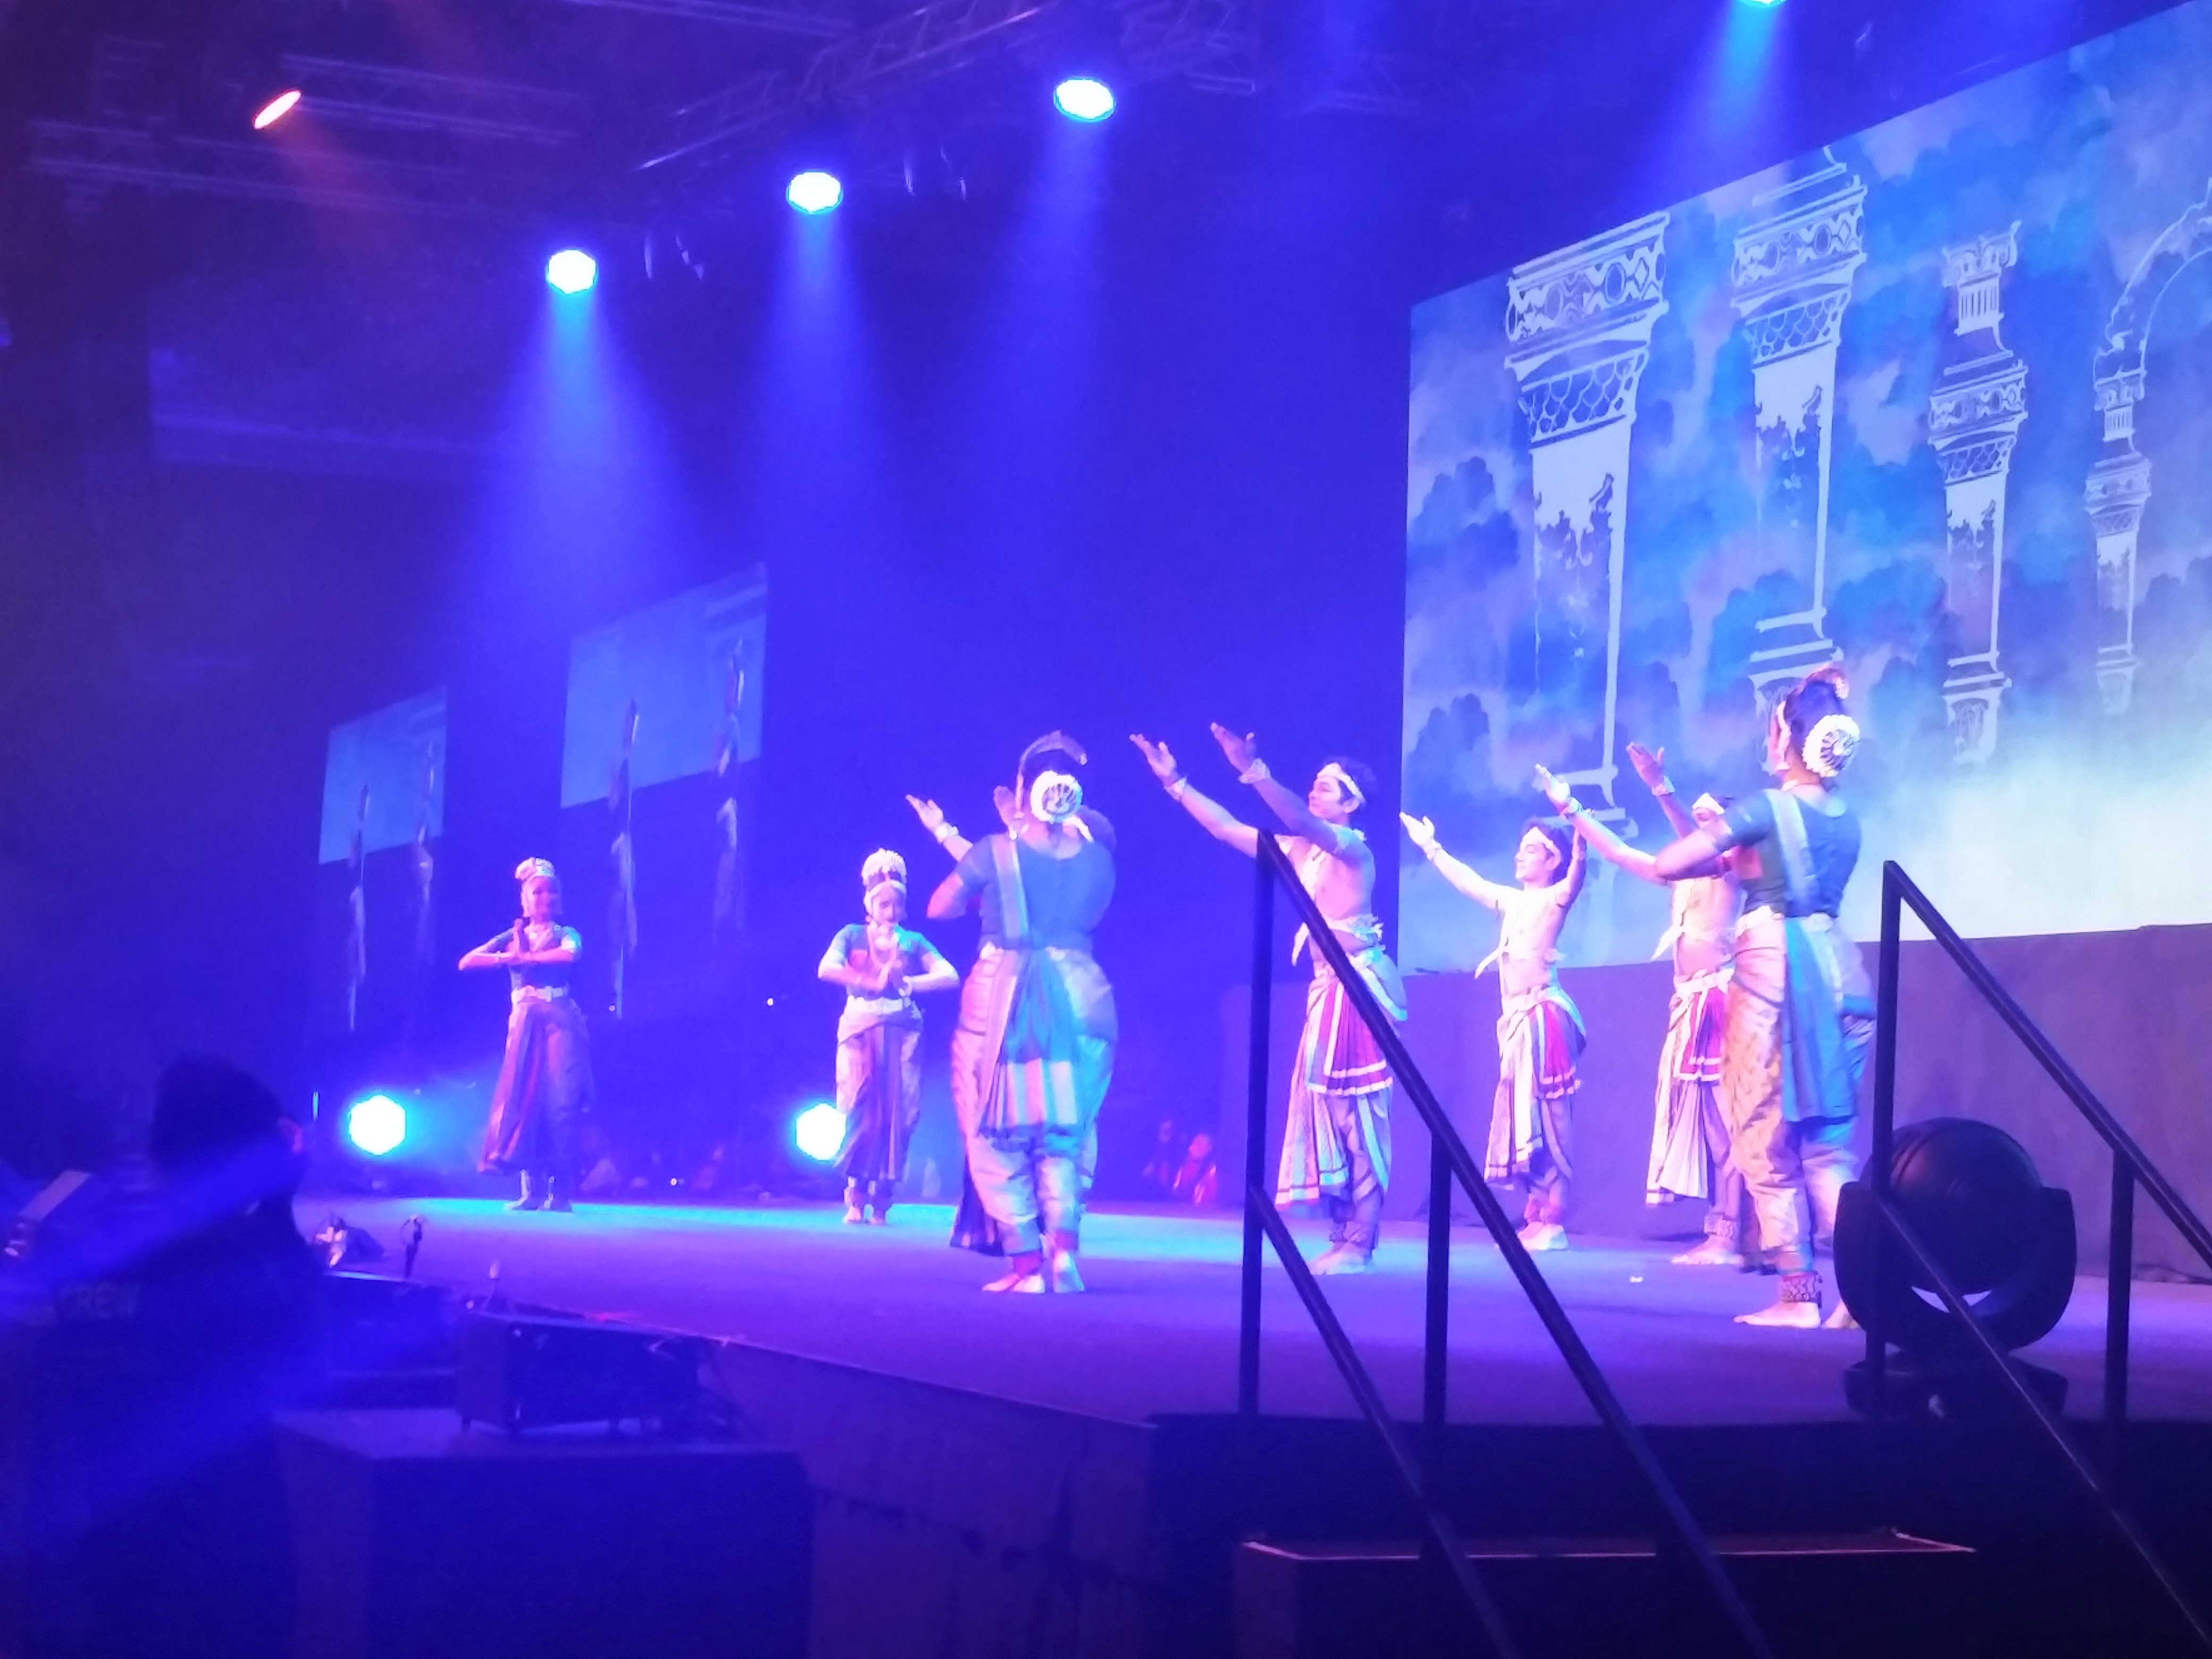 Artistes from dance companies and arts societies in ASEAN performing during Kala Tantavi – the cultural show during the gala dinner – to commemorate the ties that bind India and South East Asia.